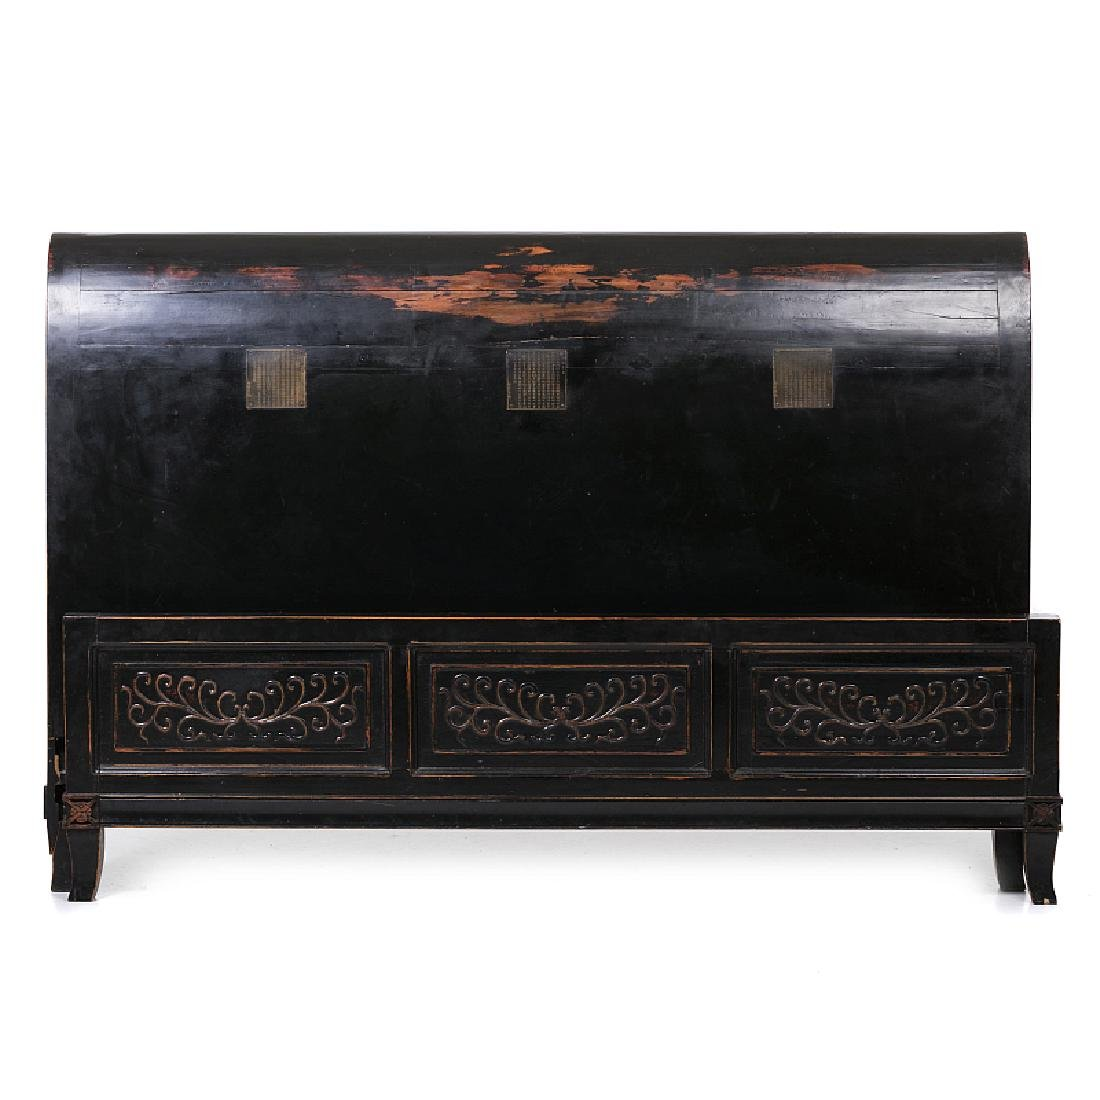 Chinese lacquered bed with inscriptions